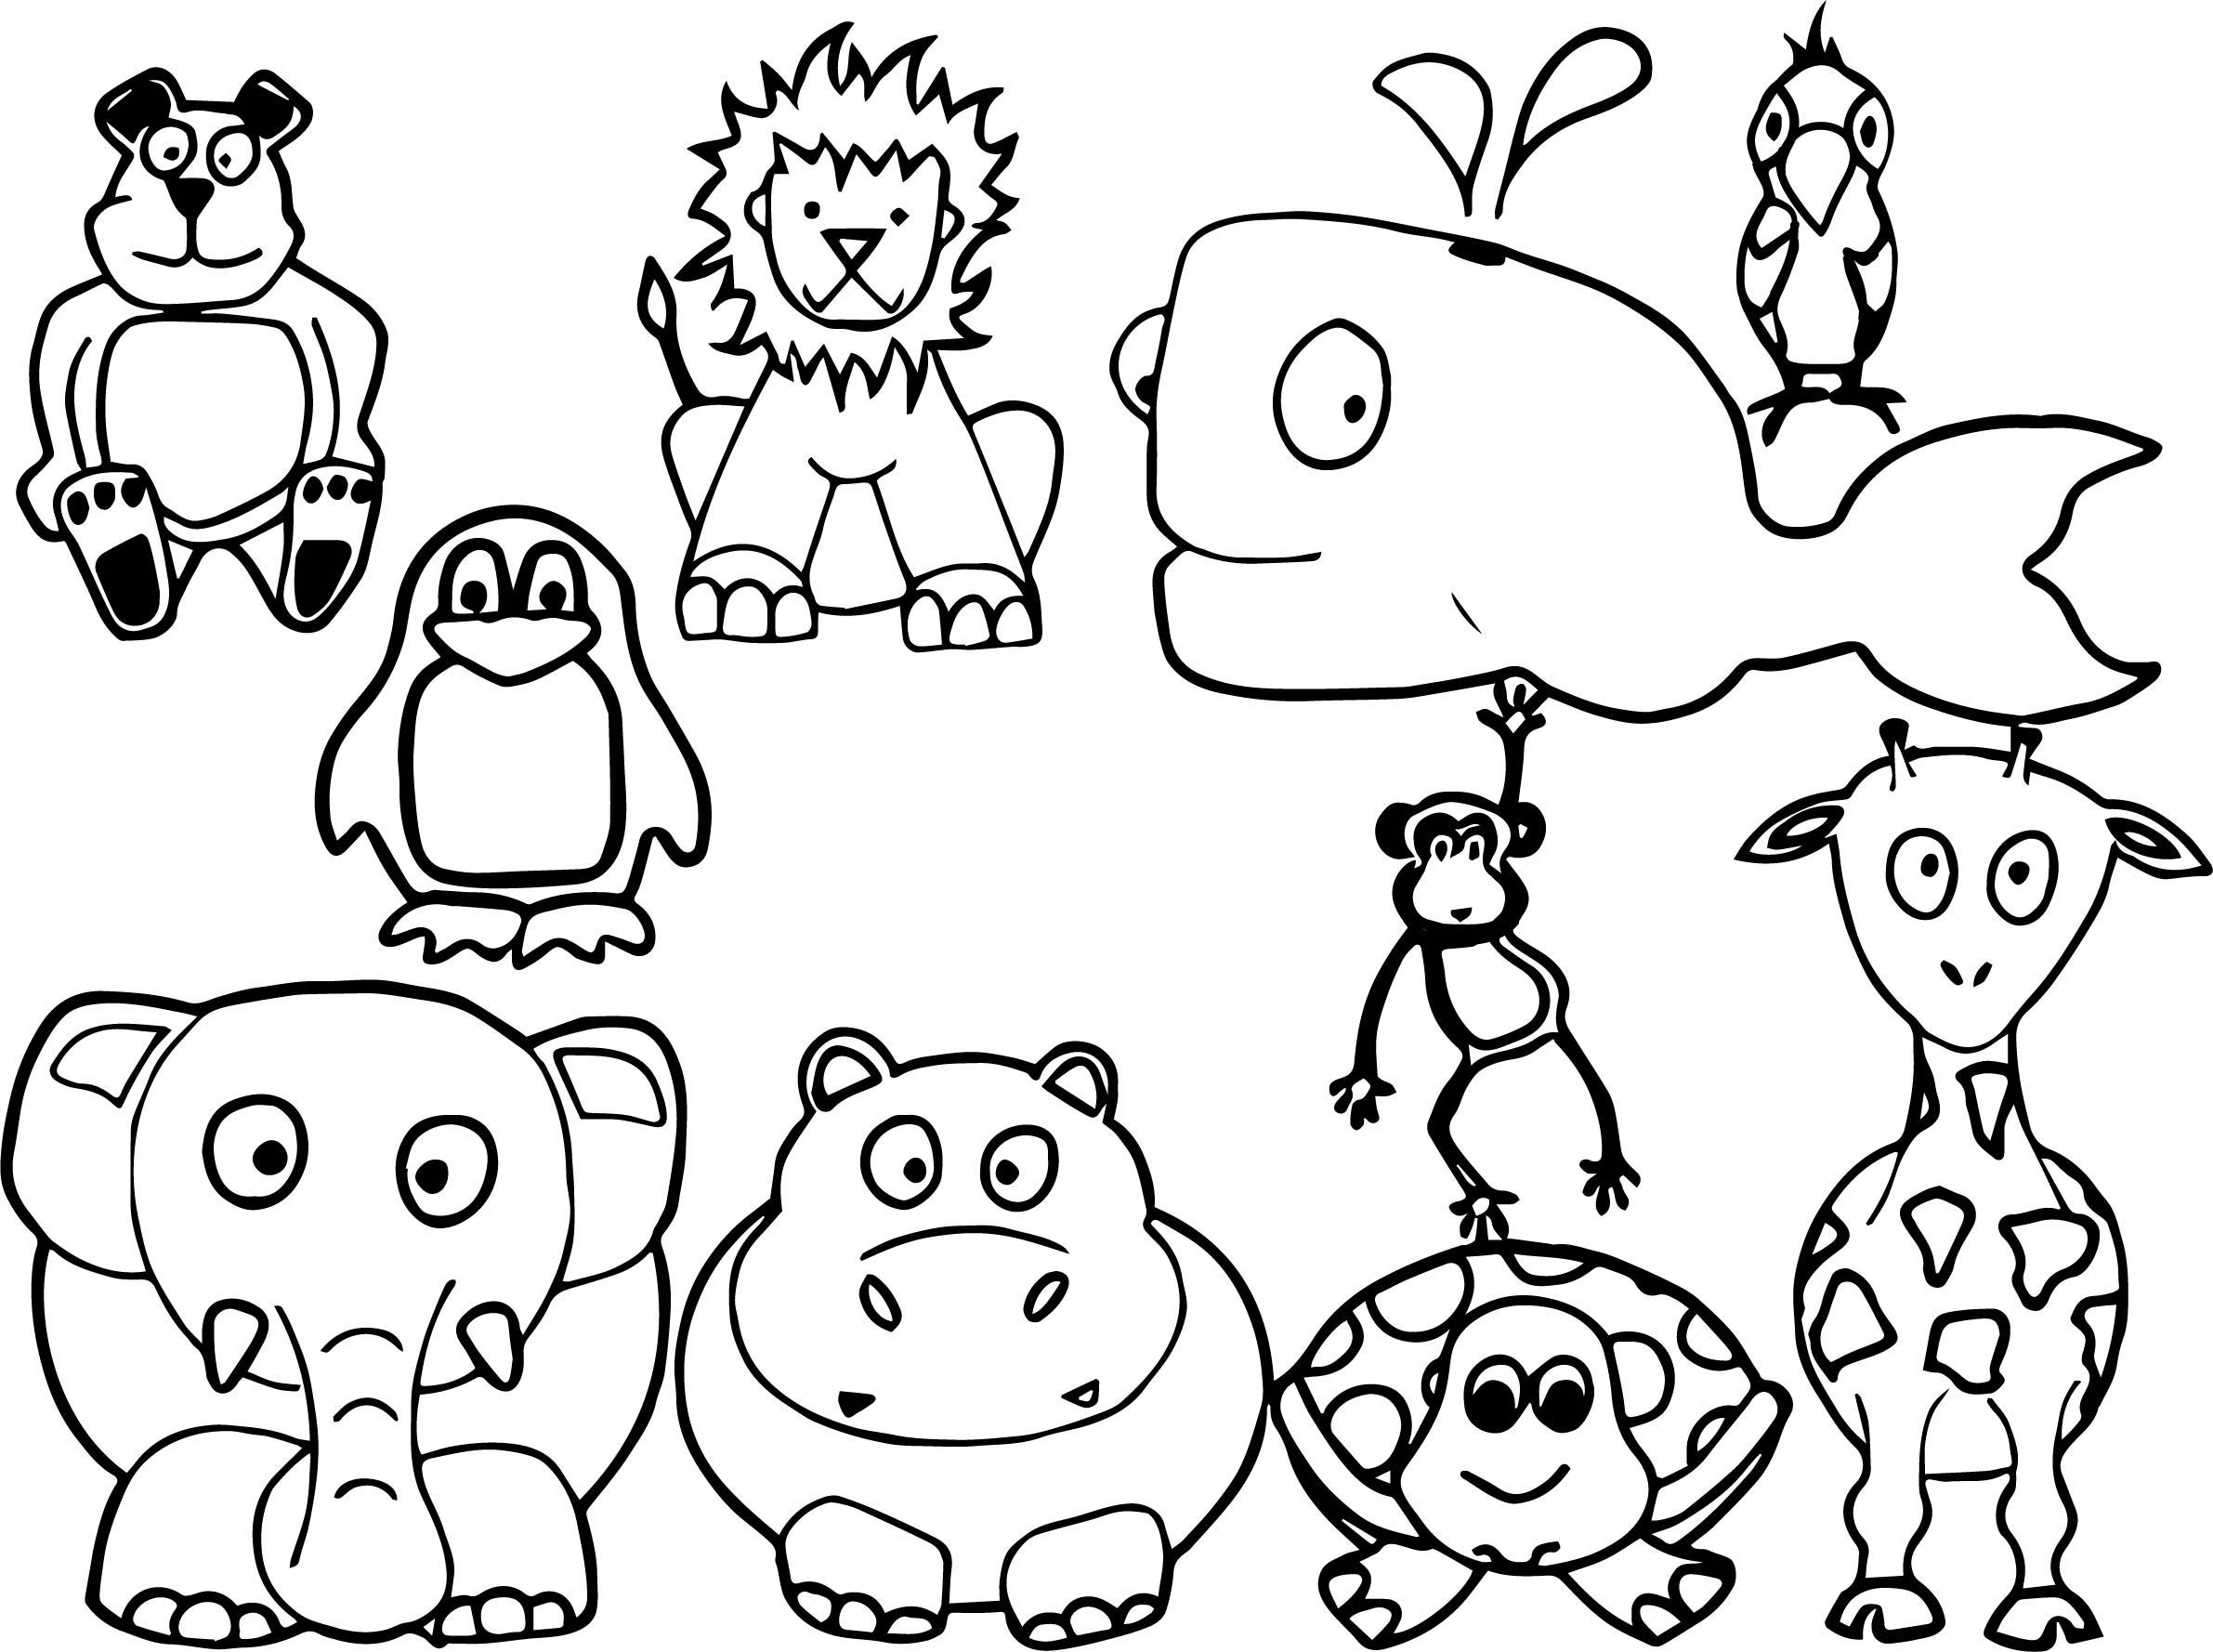 animal printable coloring pages 30 free coloring pages a geometric animal coloring pages animal coloring printable